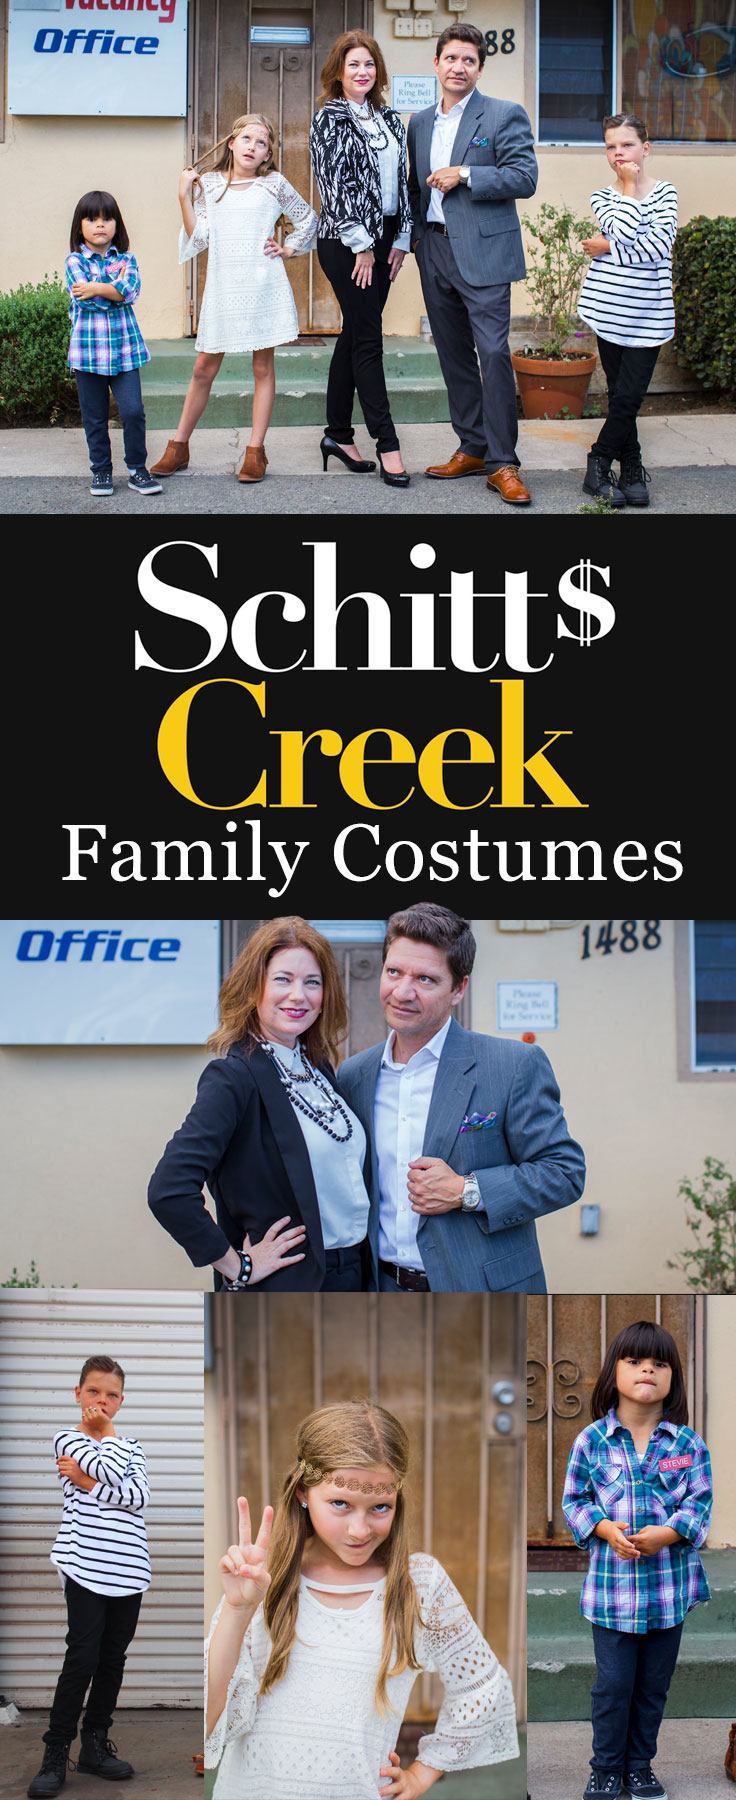 schitts creek costume